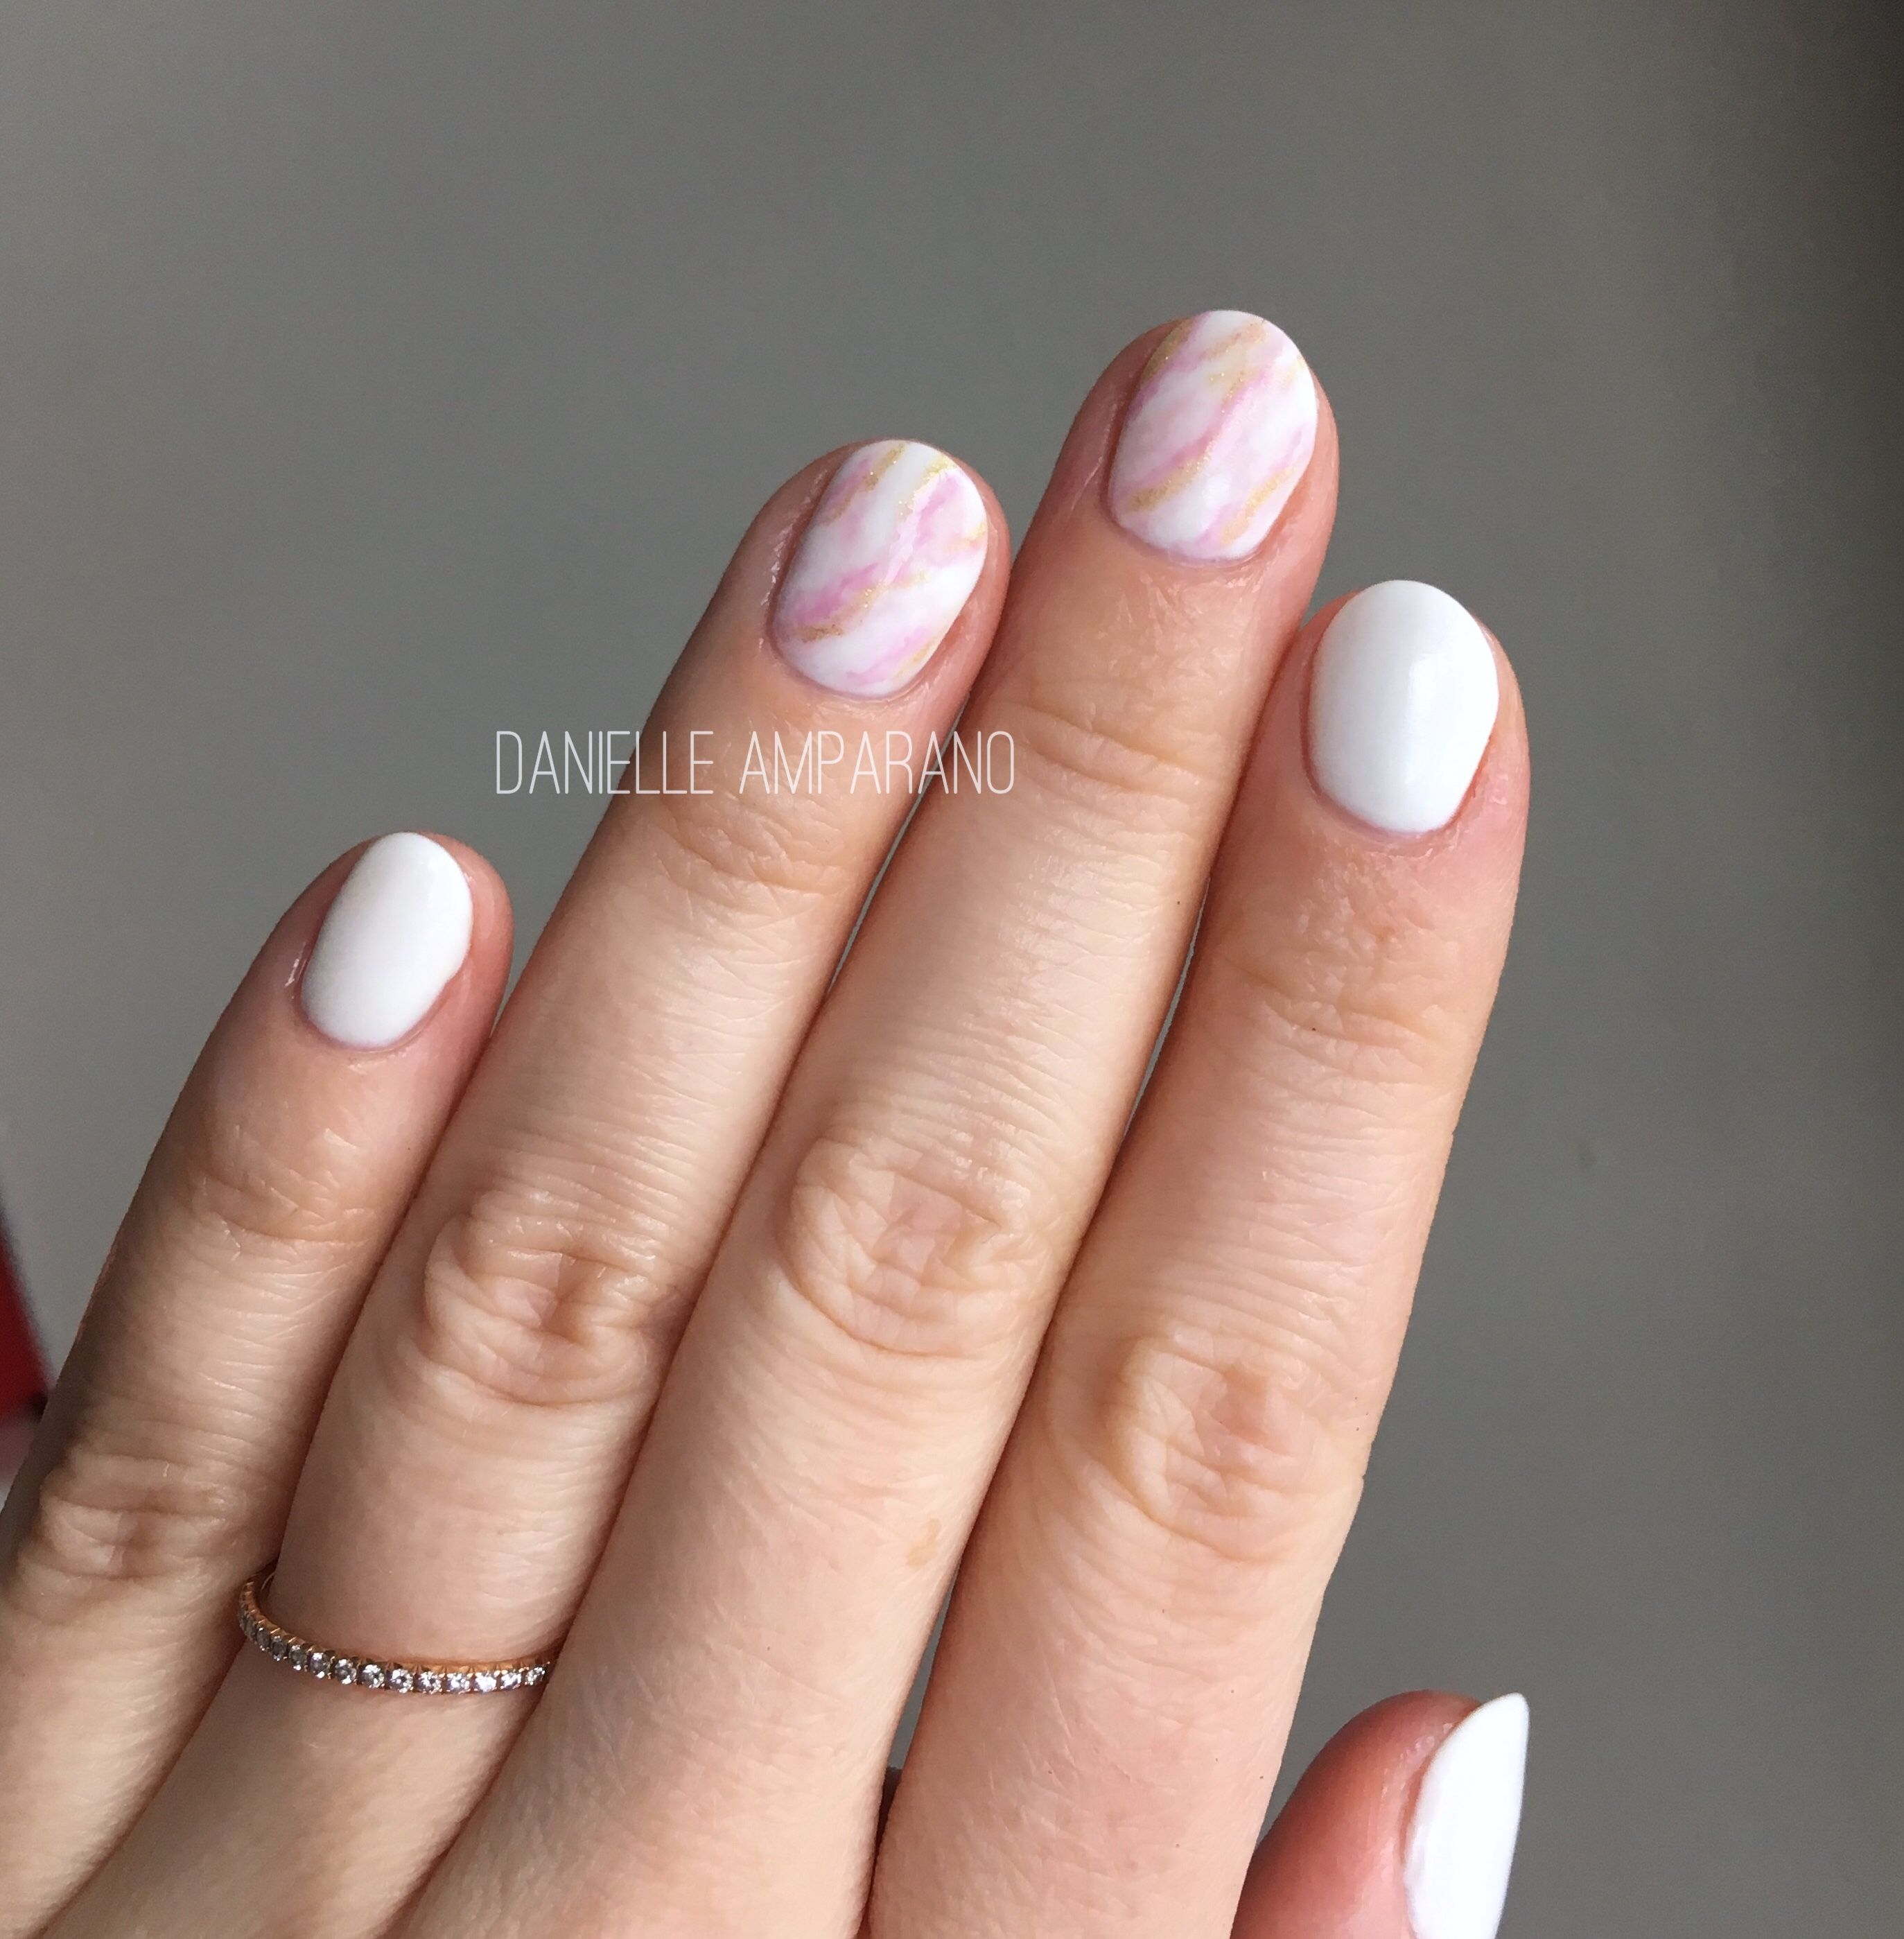 Gelmoment Rose Gold Marble Nails In 2020 Marble Nails Nail Art Inspiration Manicure